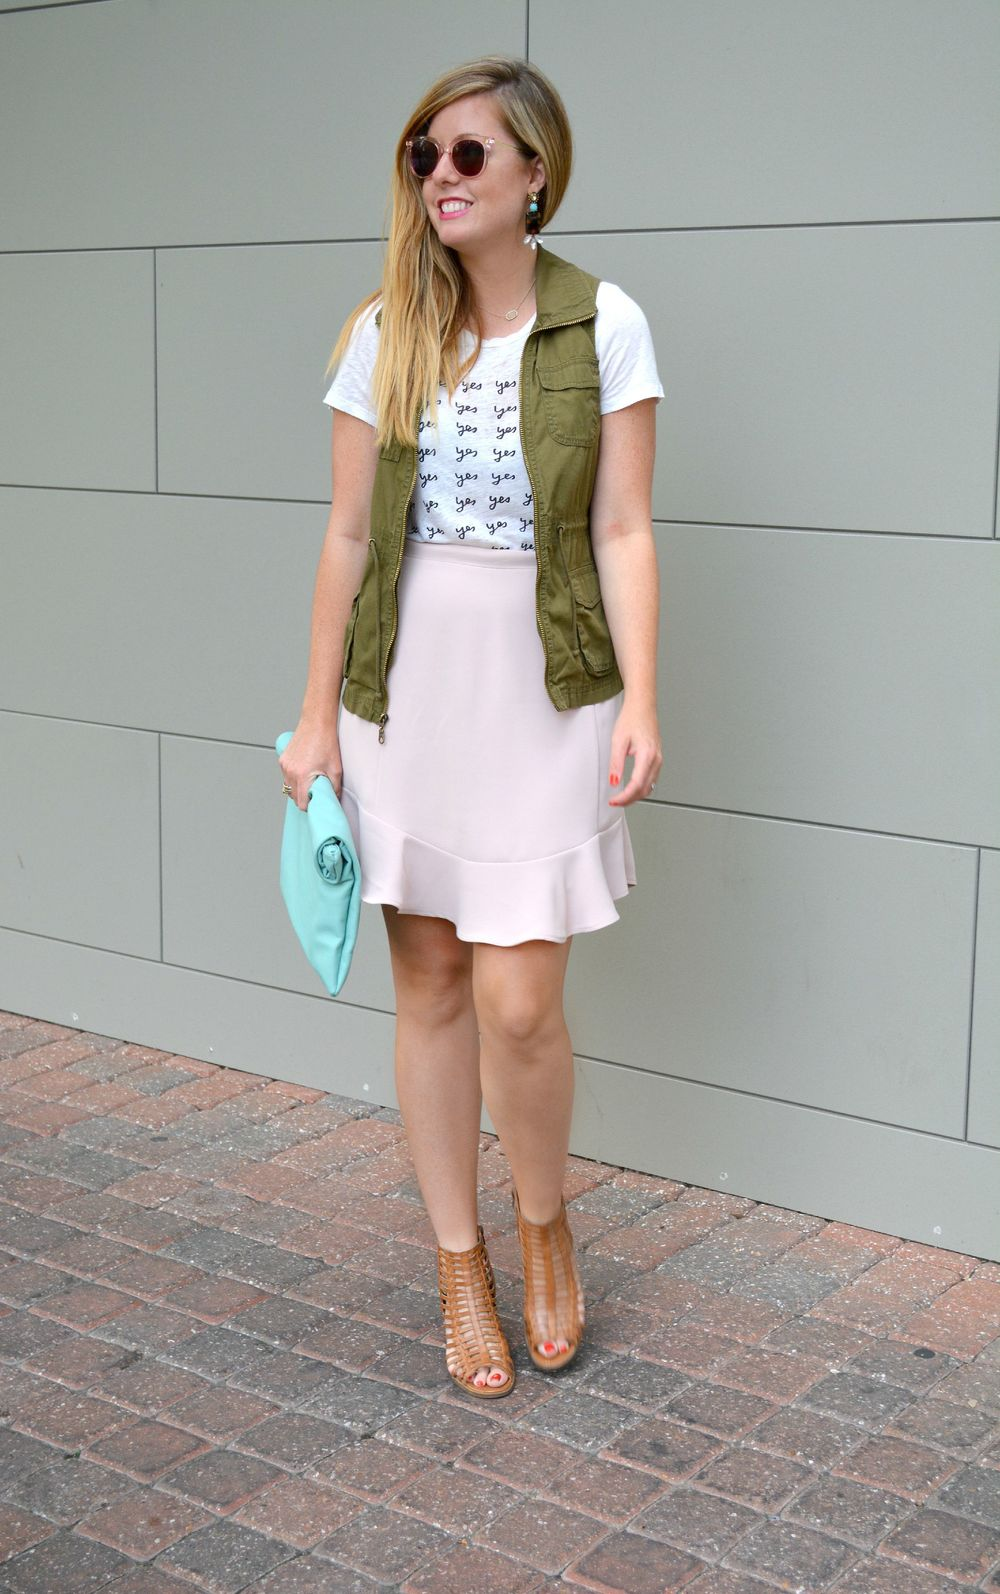 Graphic tee with cargo vest and pink skirt with mint clutch and brown cage sandals on Sophisticaited.com